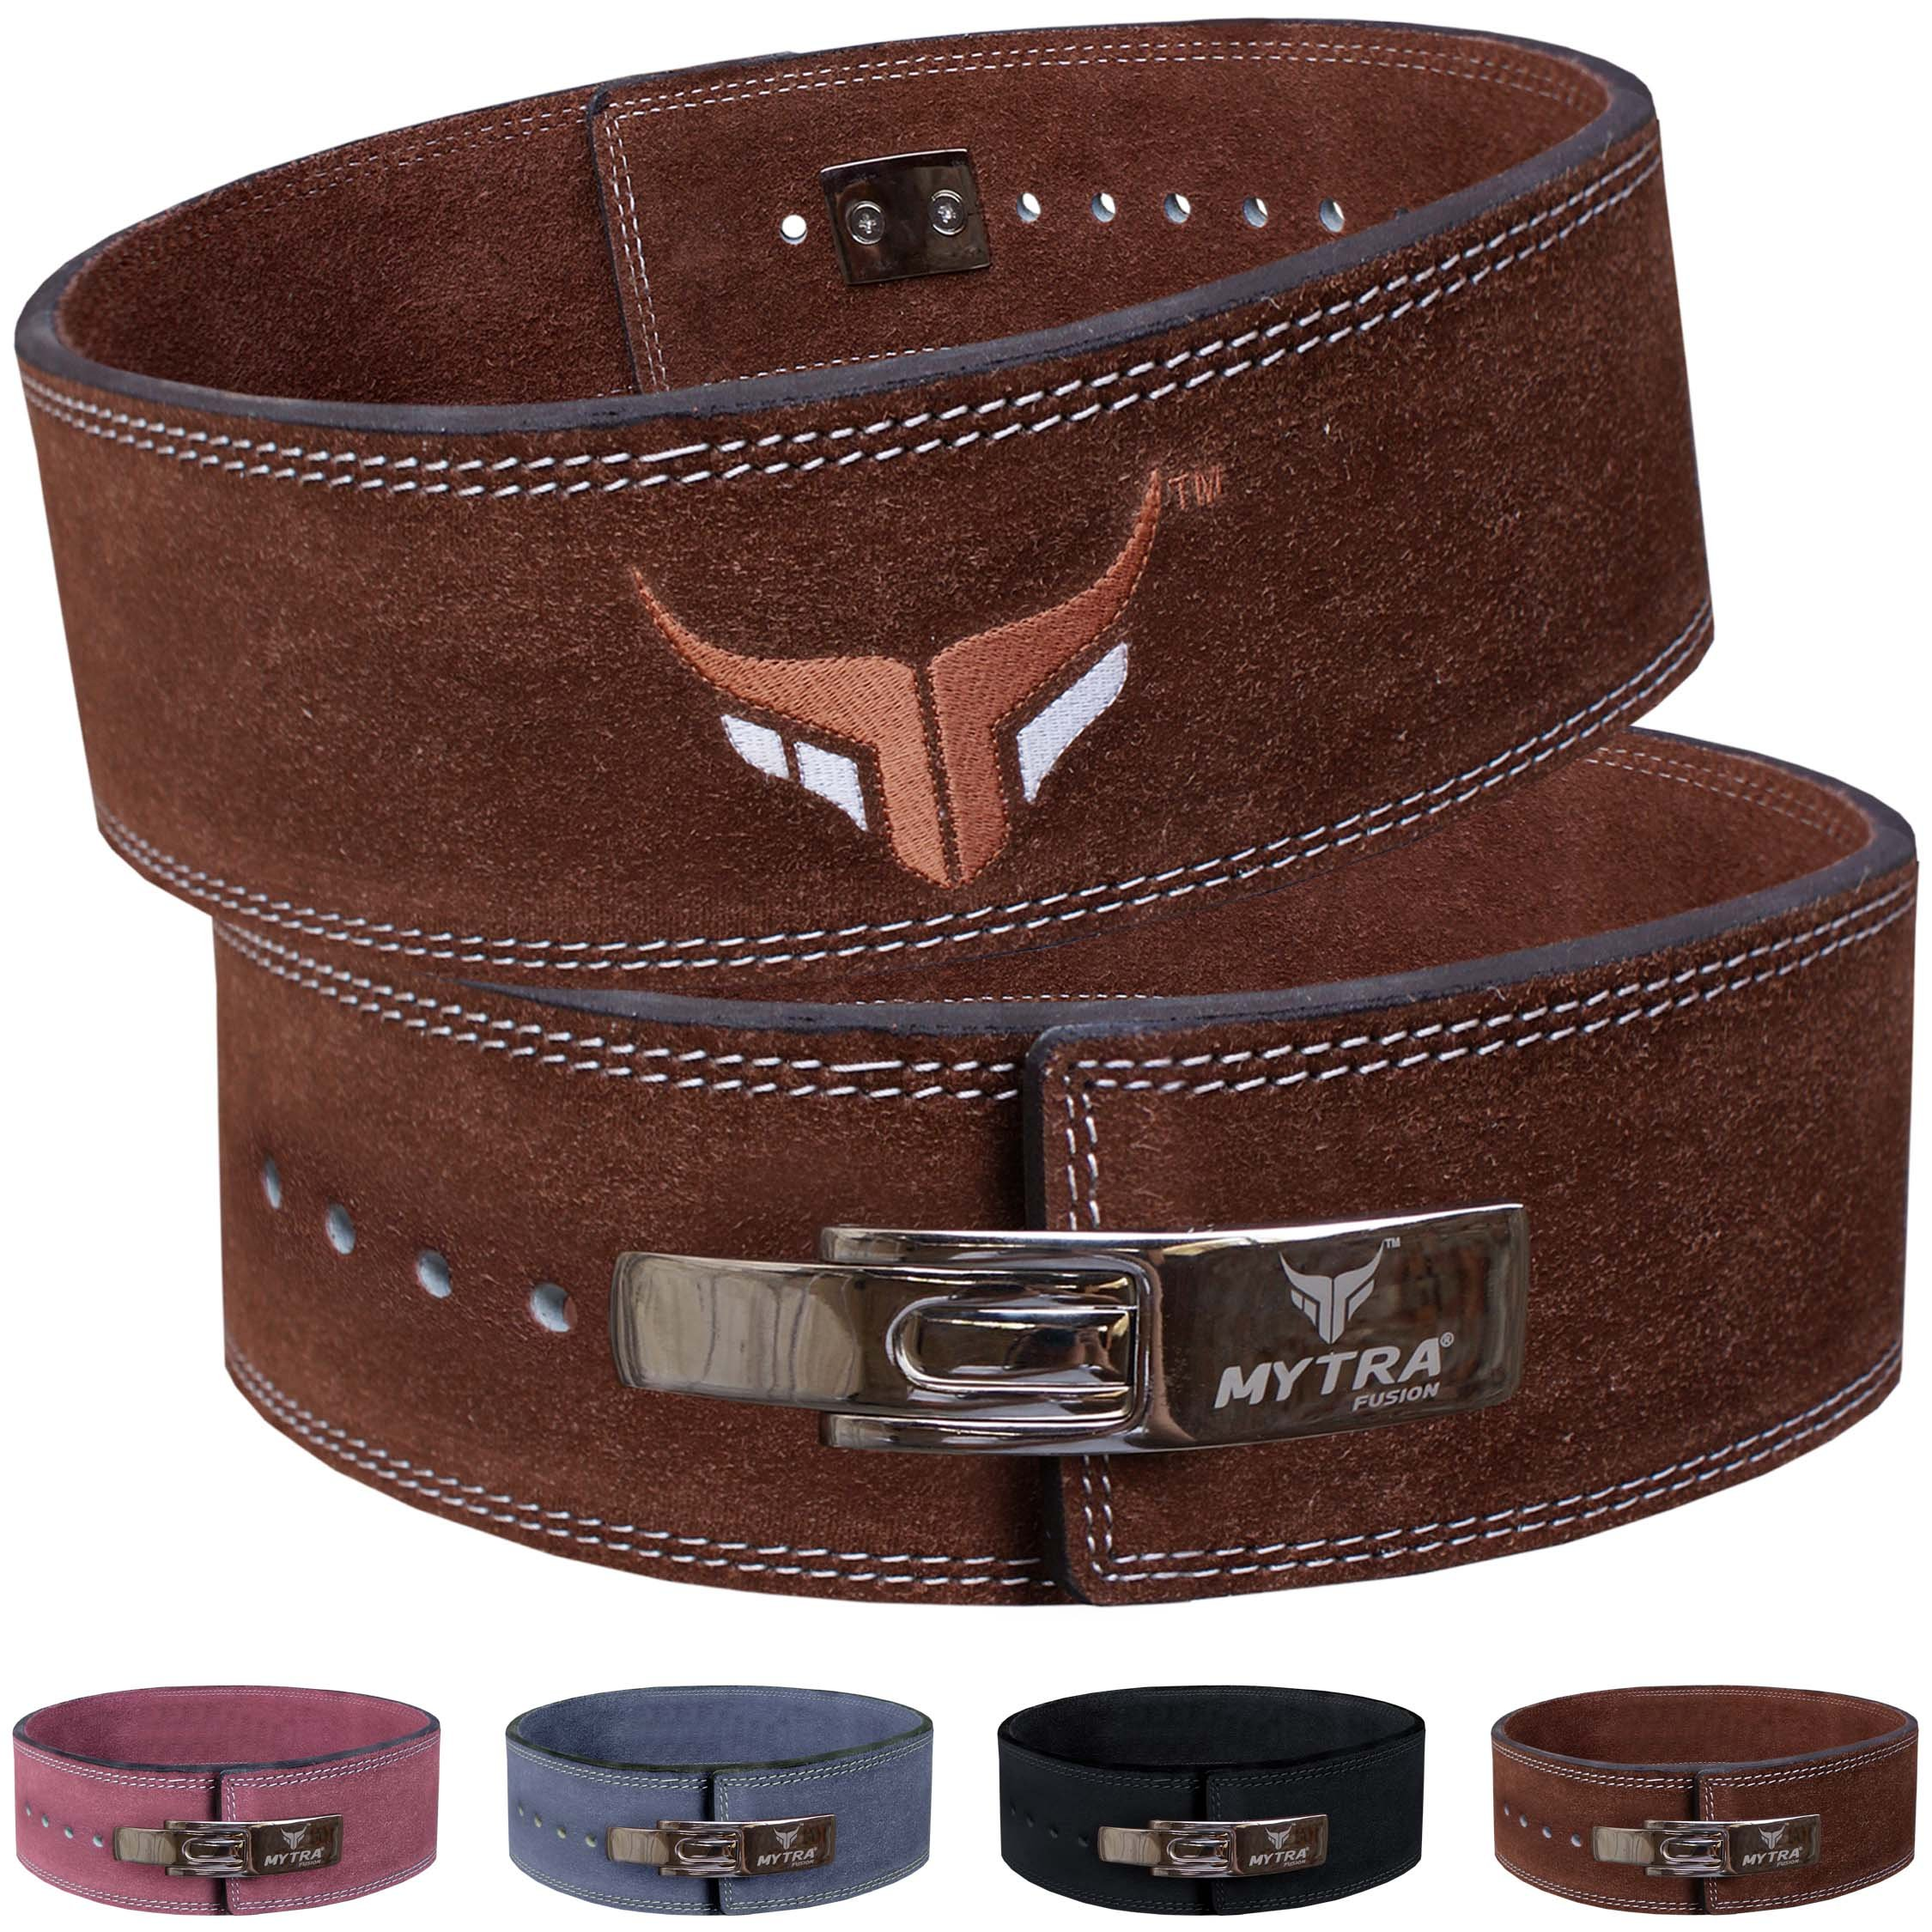 Mytra Fusion Leather Weight Lifting Power Lifting Back Support Belt Weight Lifting Belt Men Weight Lifting Belt Women Weightlifting Belt (Small, Brown)